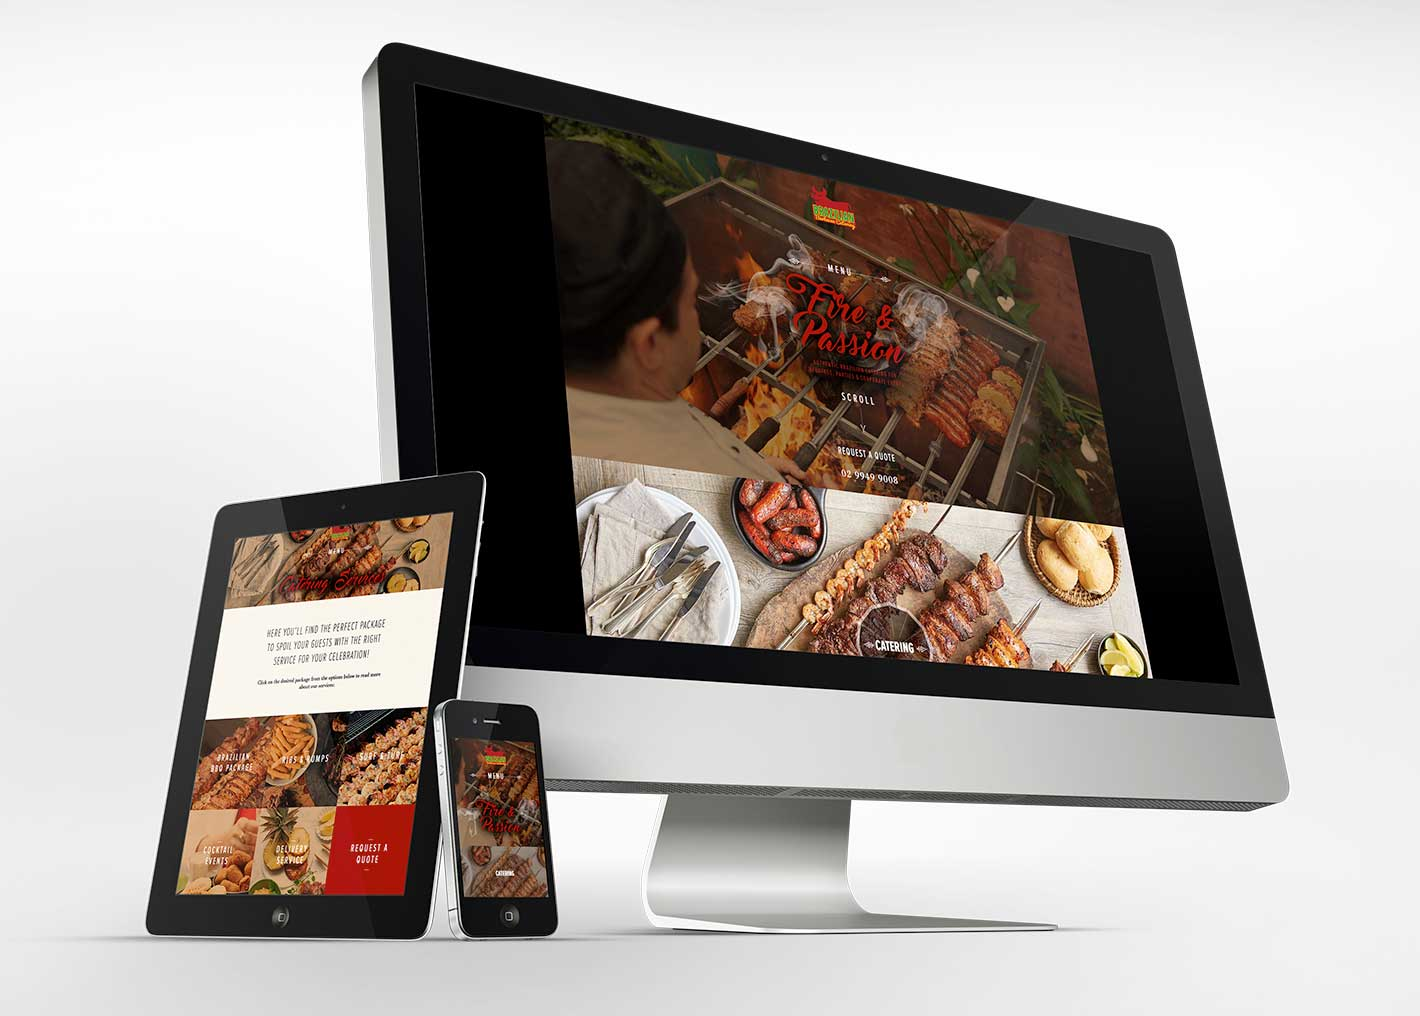 Brazilian Barbecue Catering website on various devices